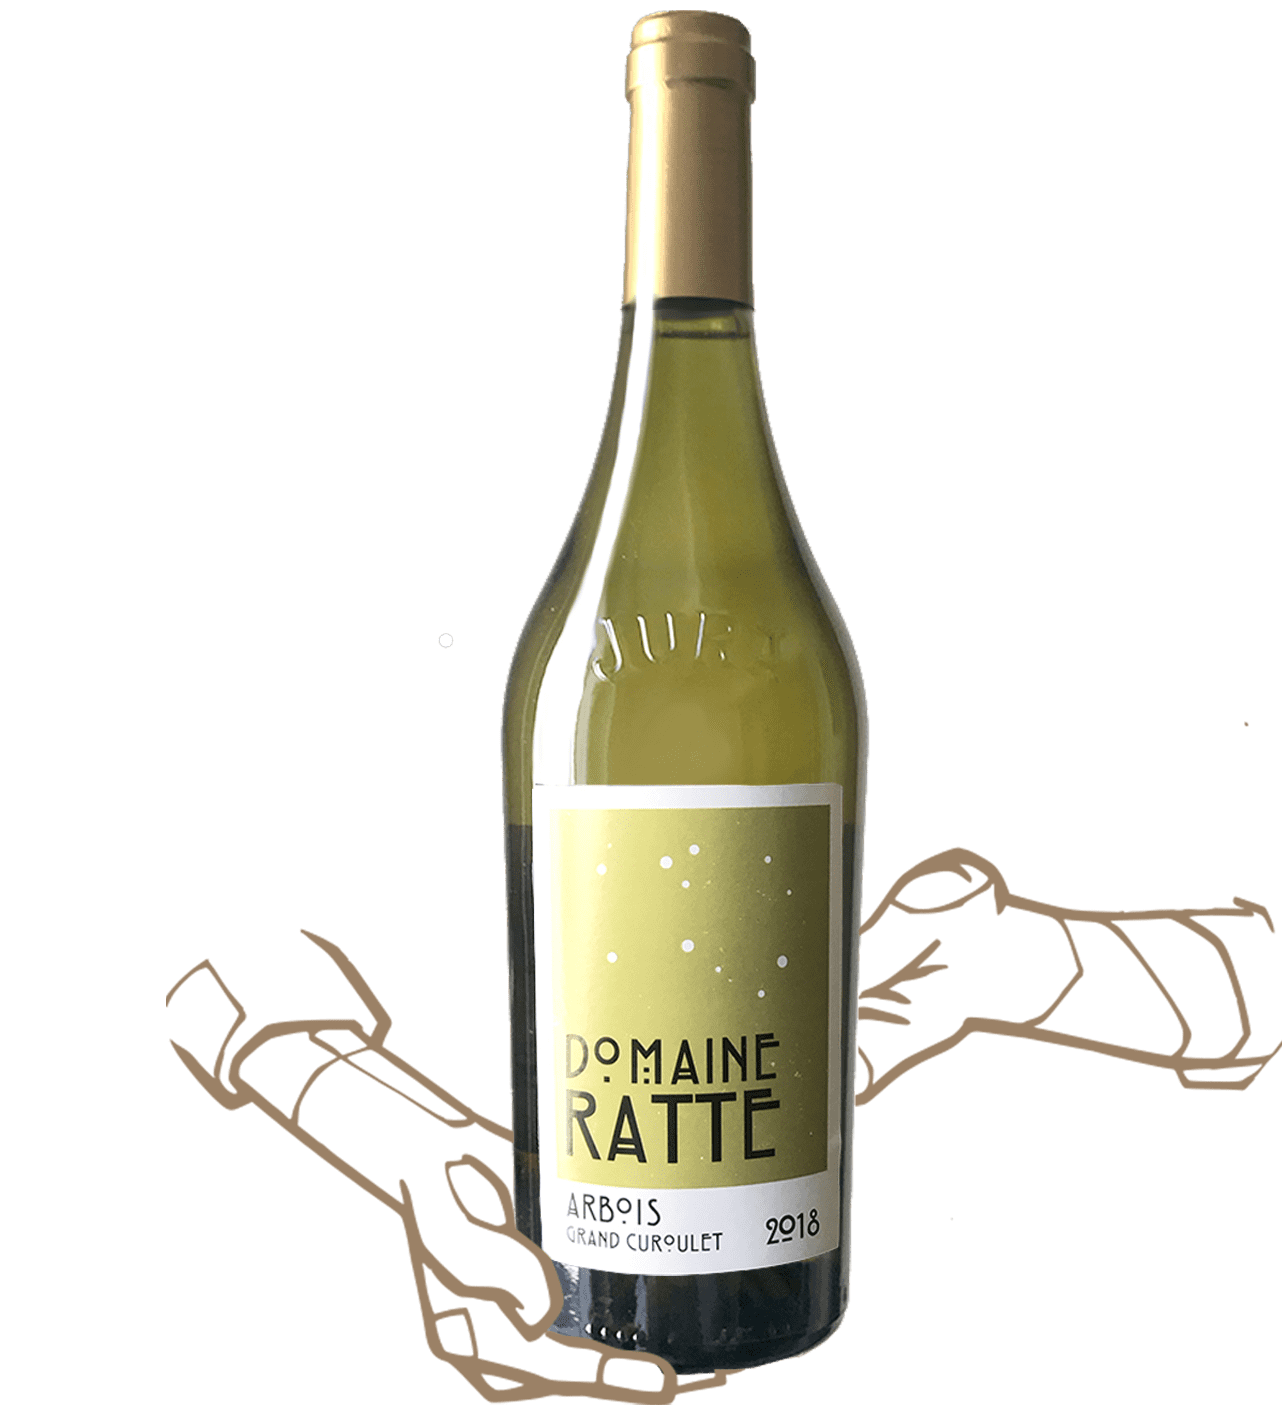 Grand Curoulet by Domain Ratte is a natural wine from Jura